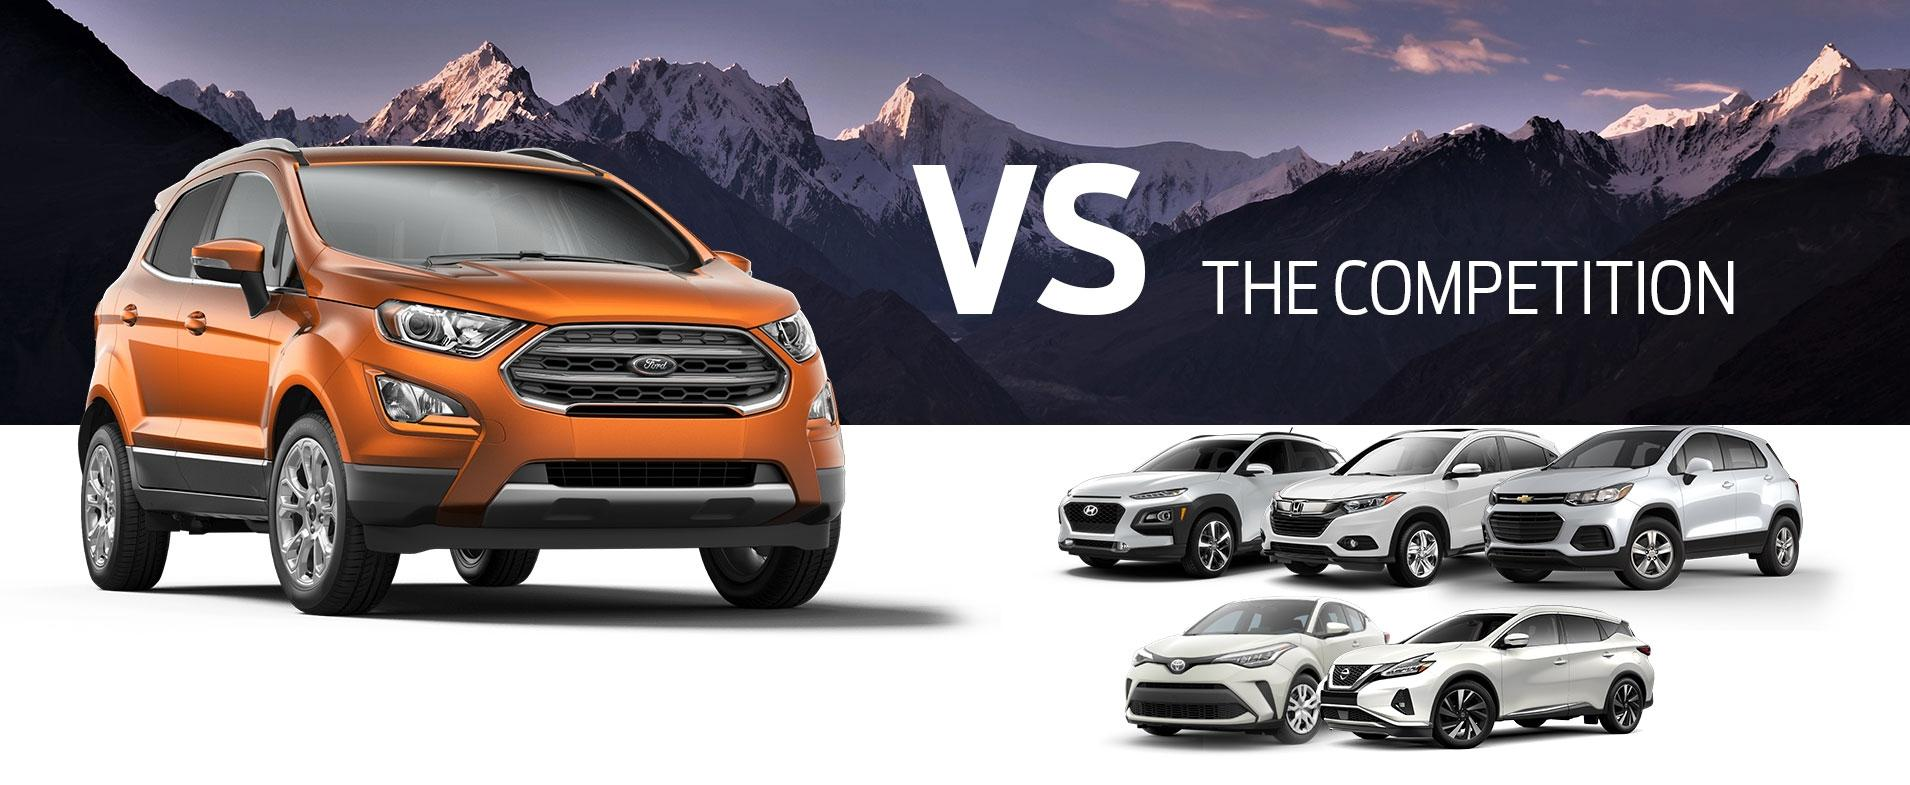 EcoSport vs Competition